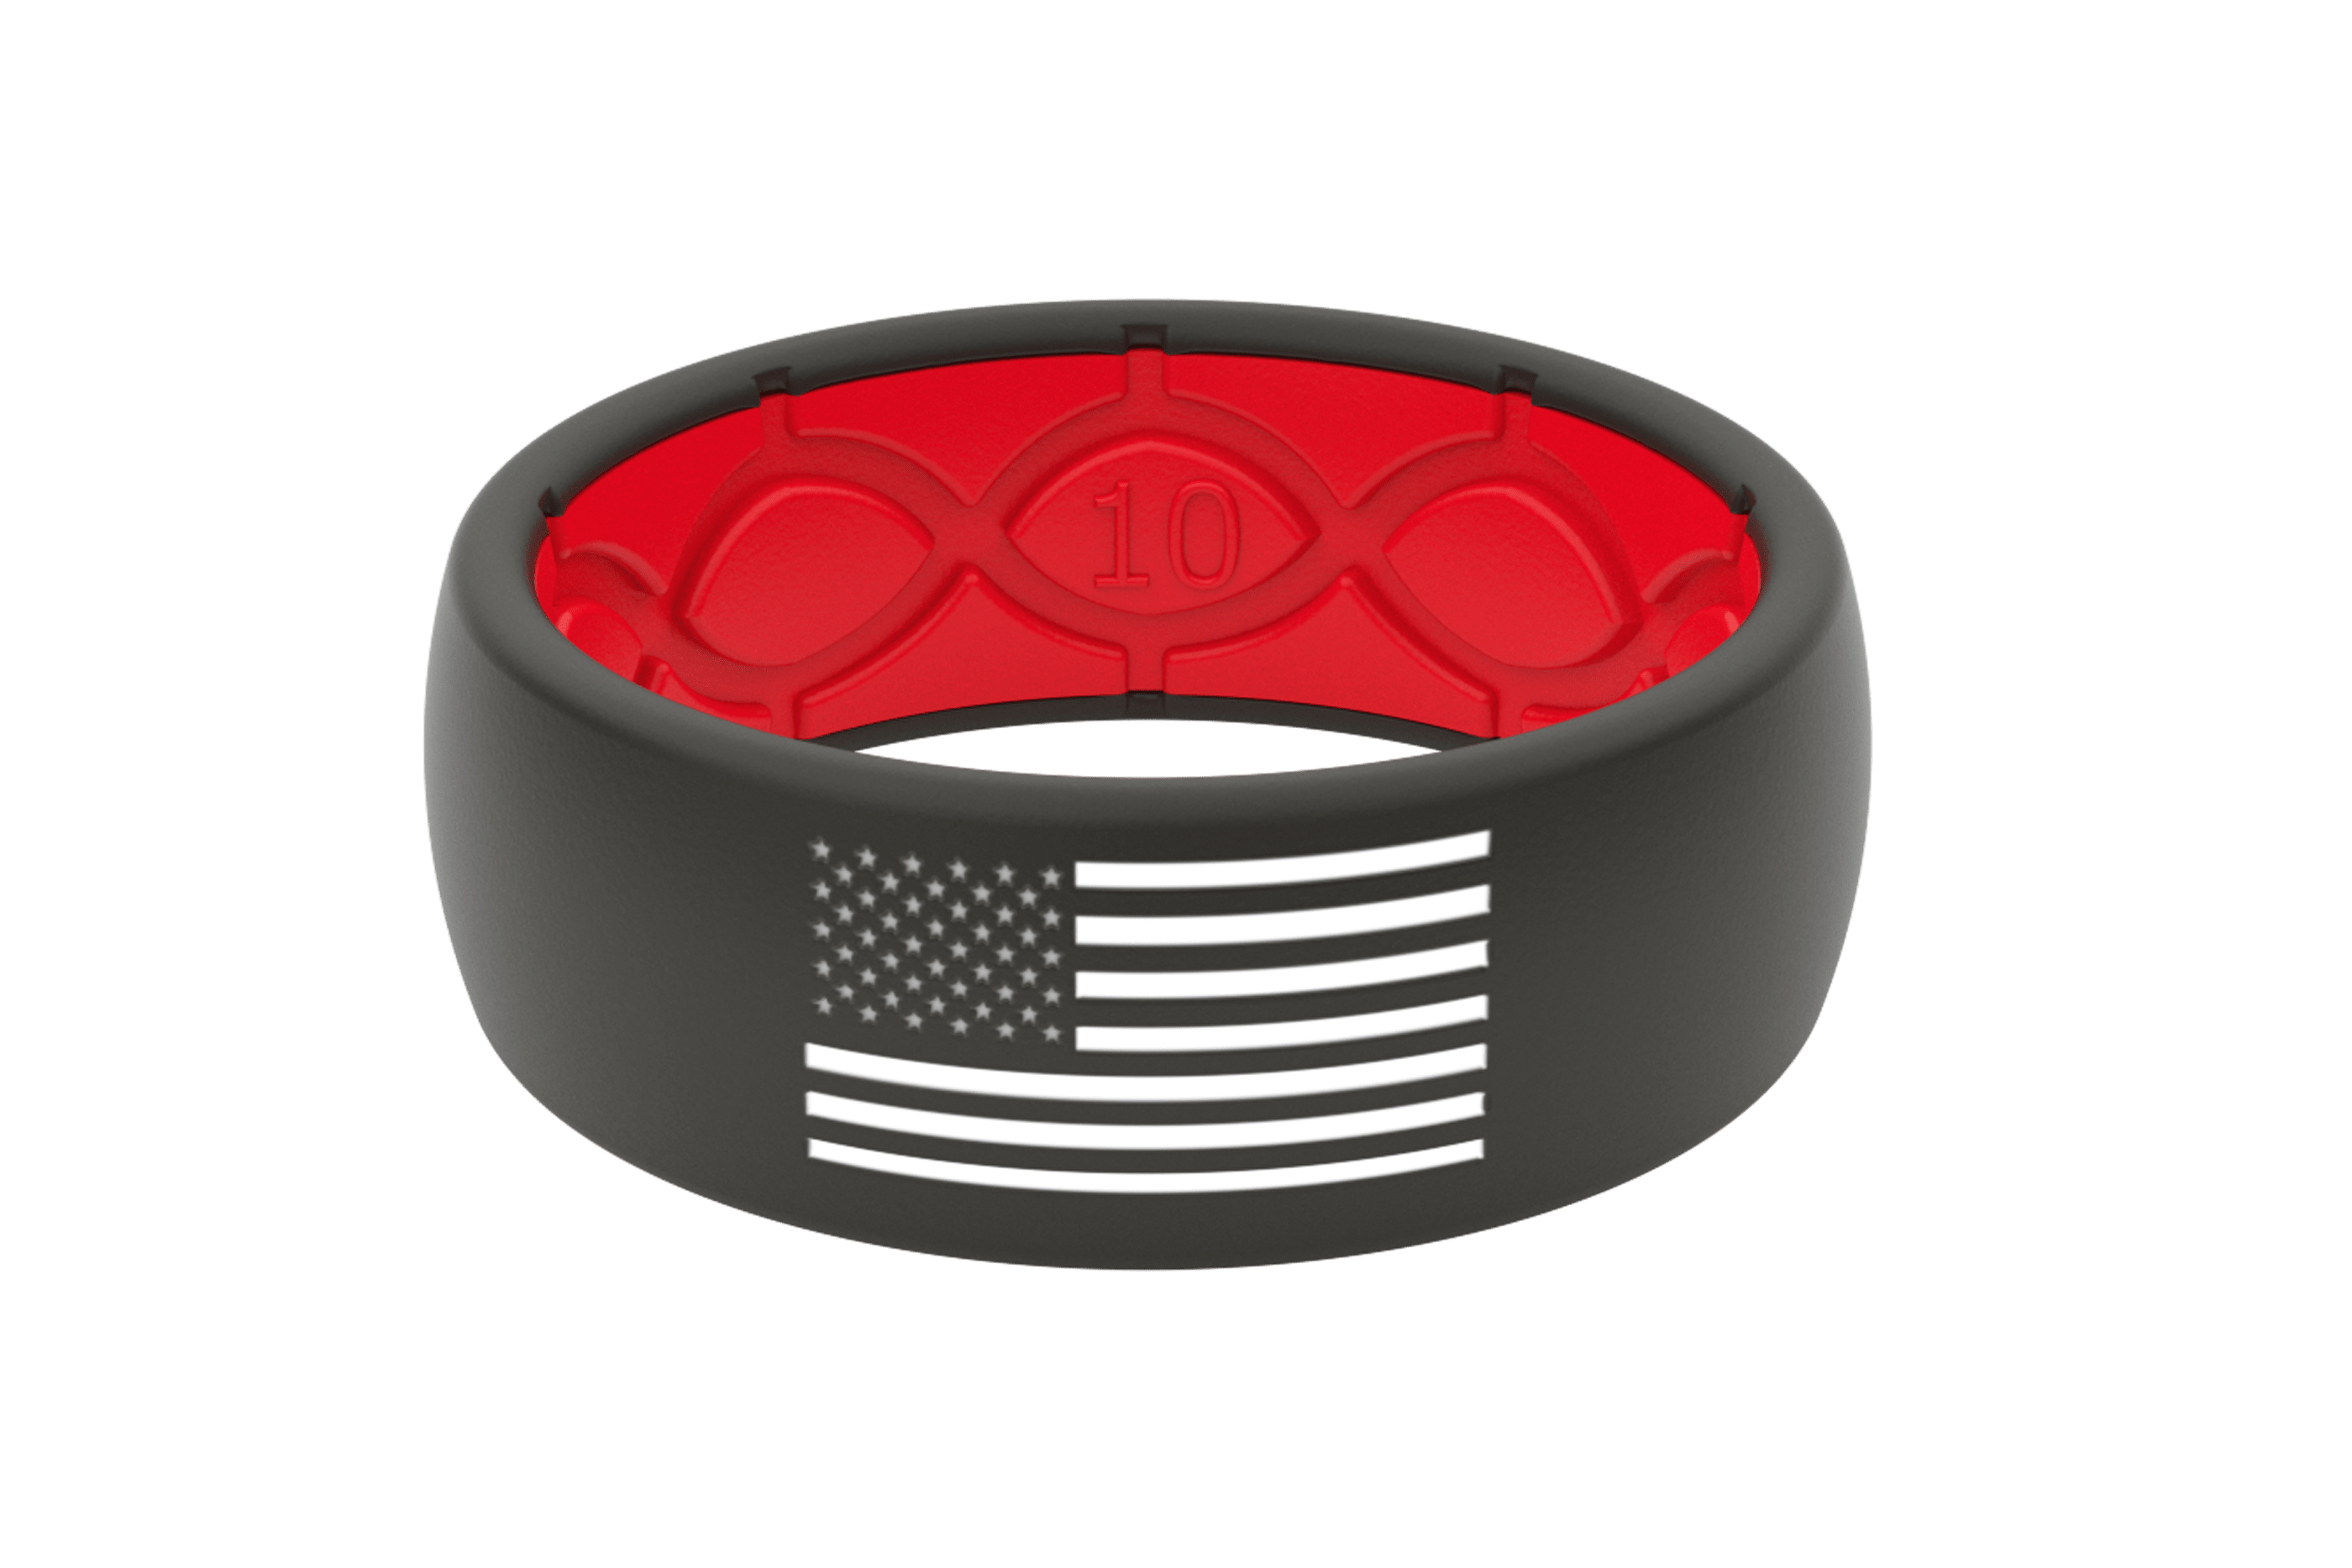 Groove Hero Black and white flag ring viewed front on